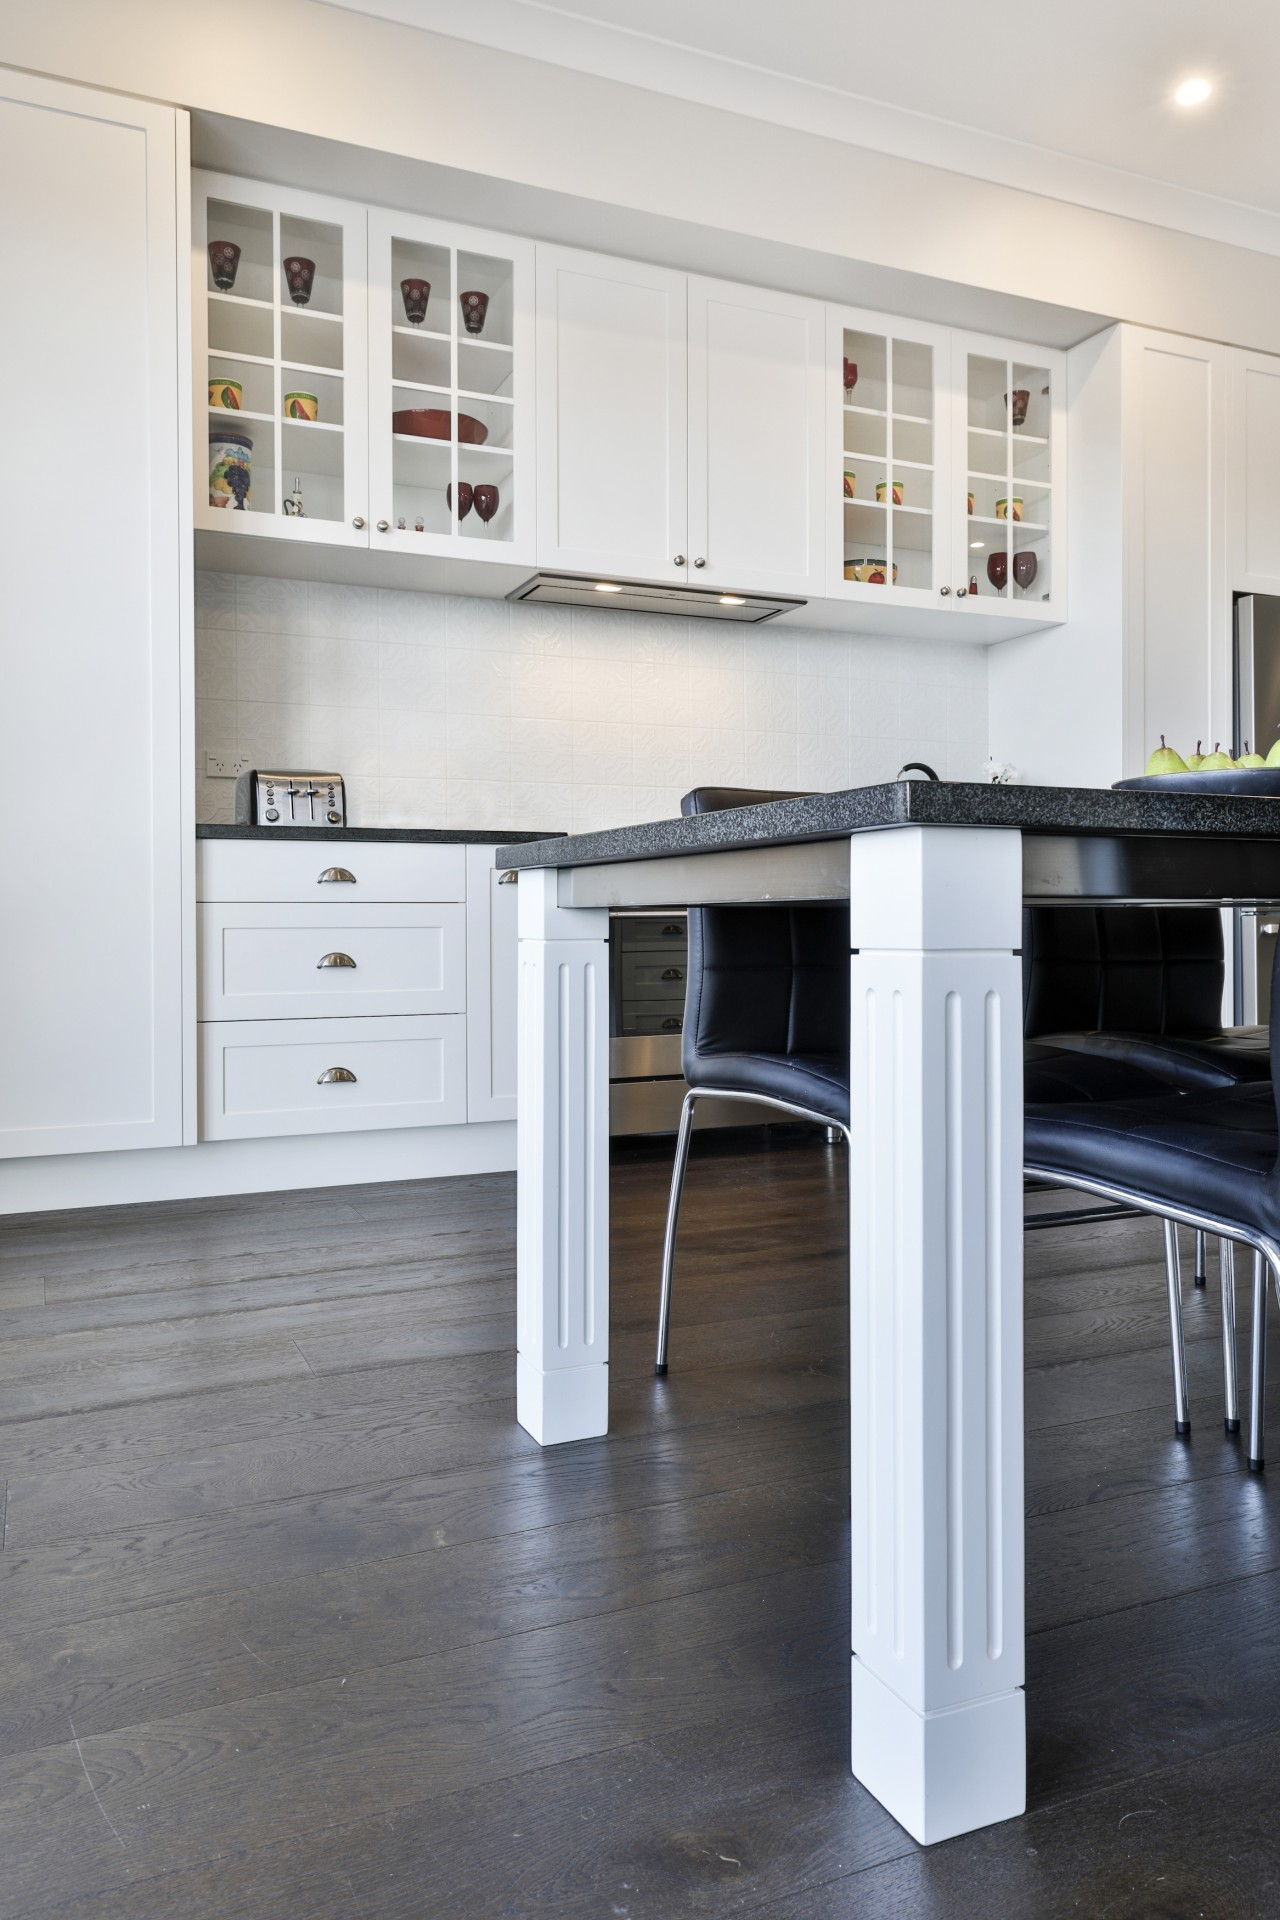 Even the breakfast table legs feature ornate period